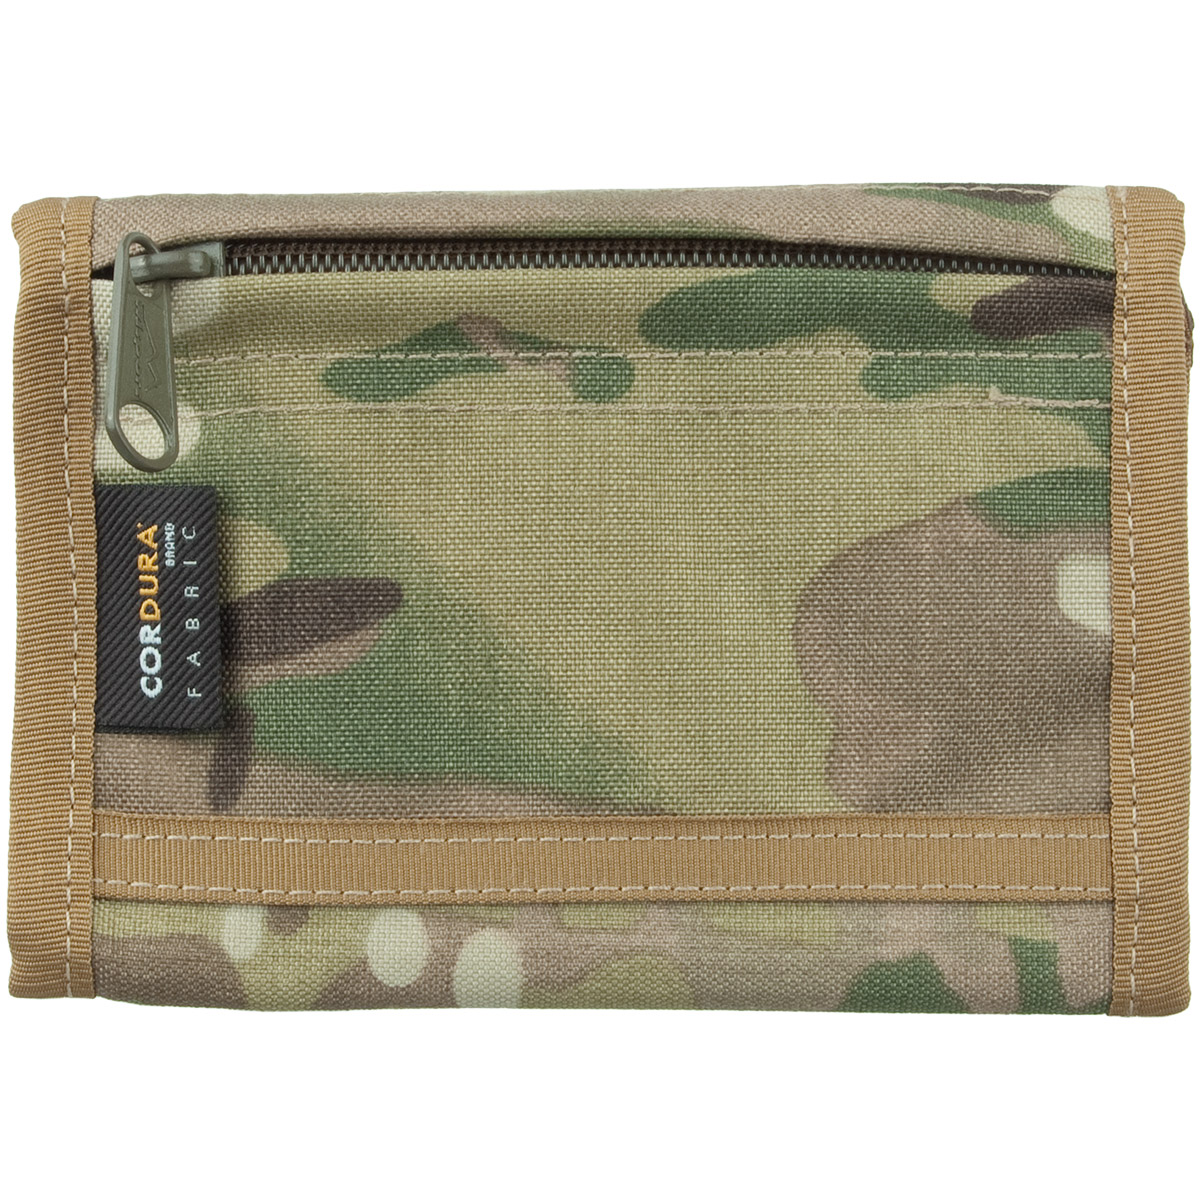 Wisport Classic Mens Military Wallet Army Travel Safety